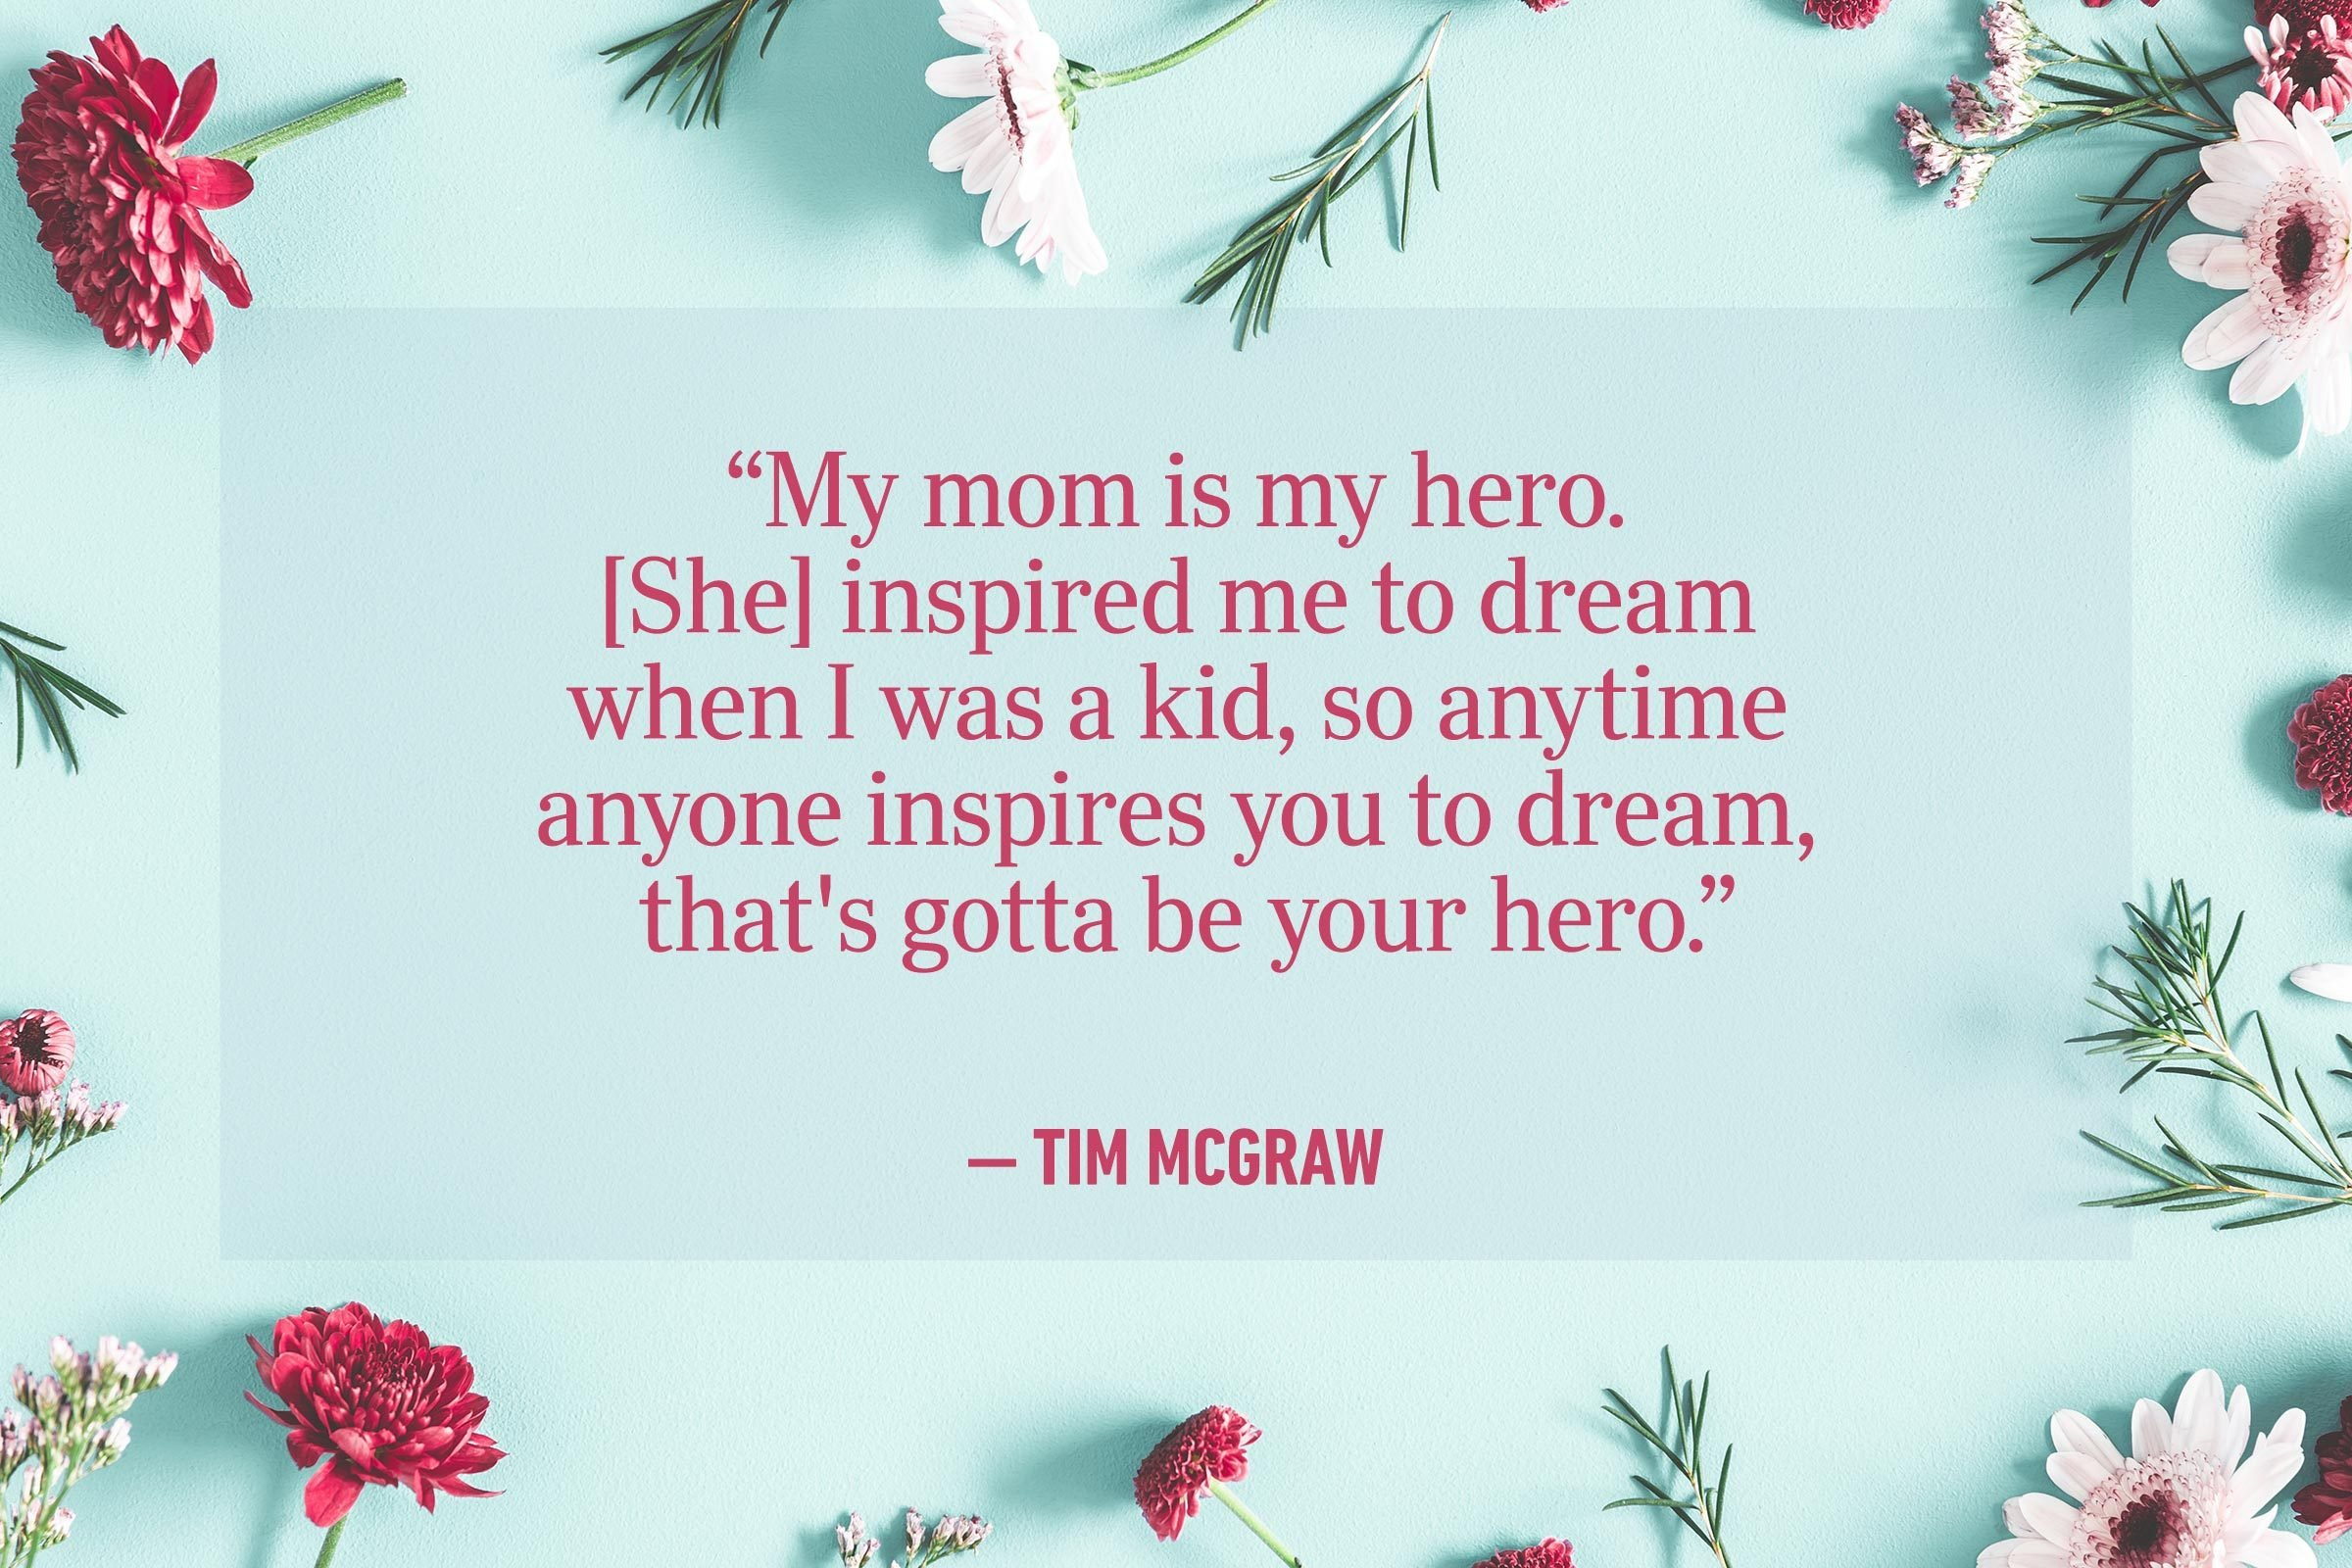 """""""My mom is my hero. [She] inspired me to dream when I was a kid, so anytime anyone inspires you to dream, that's gotta be your hero."""" —Tim McGraw"""